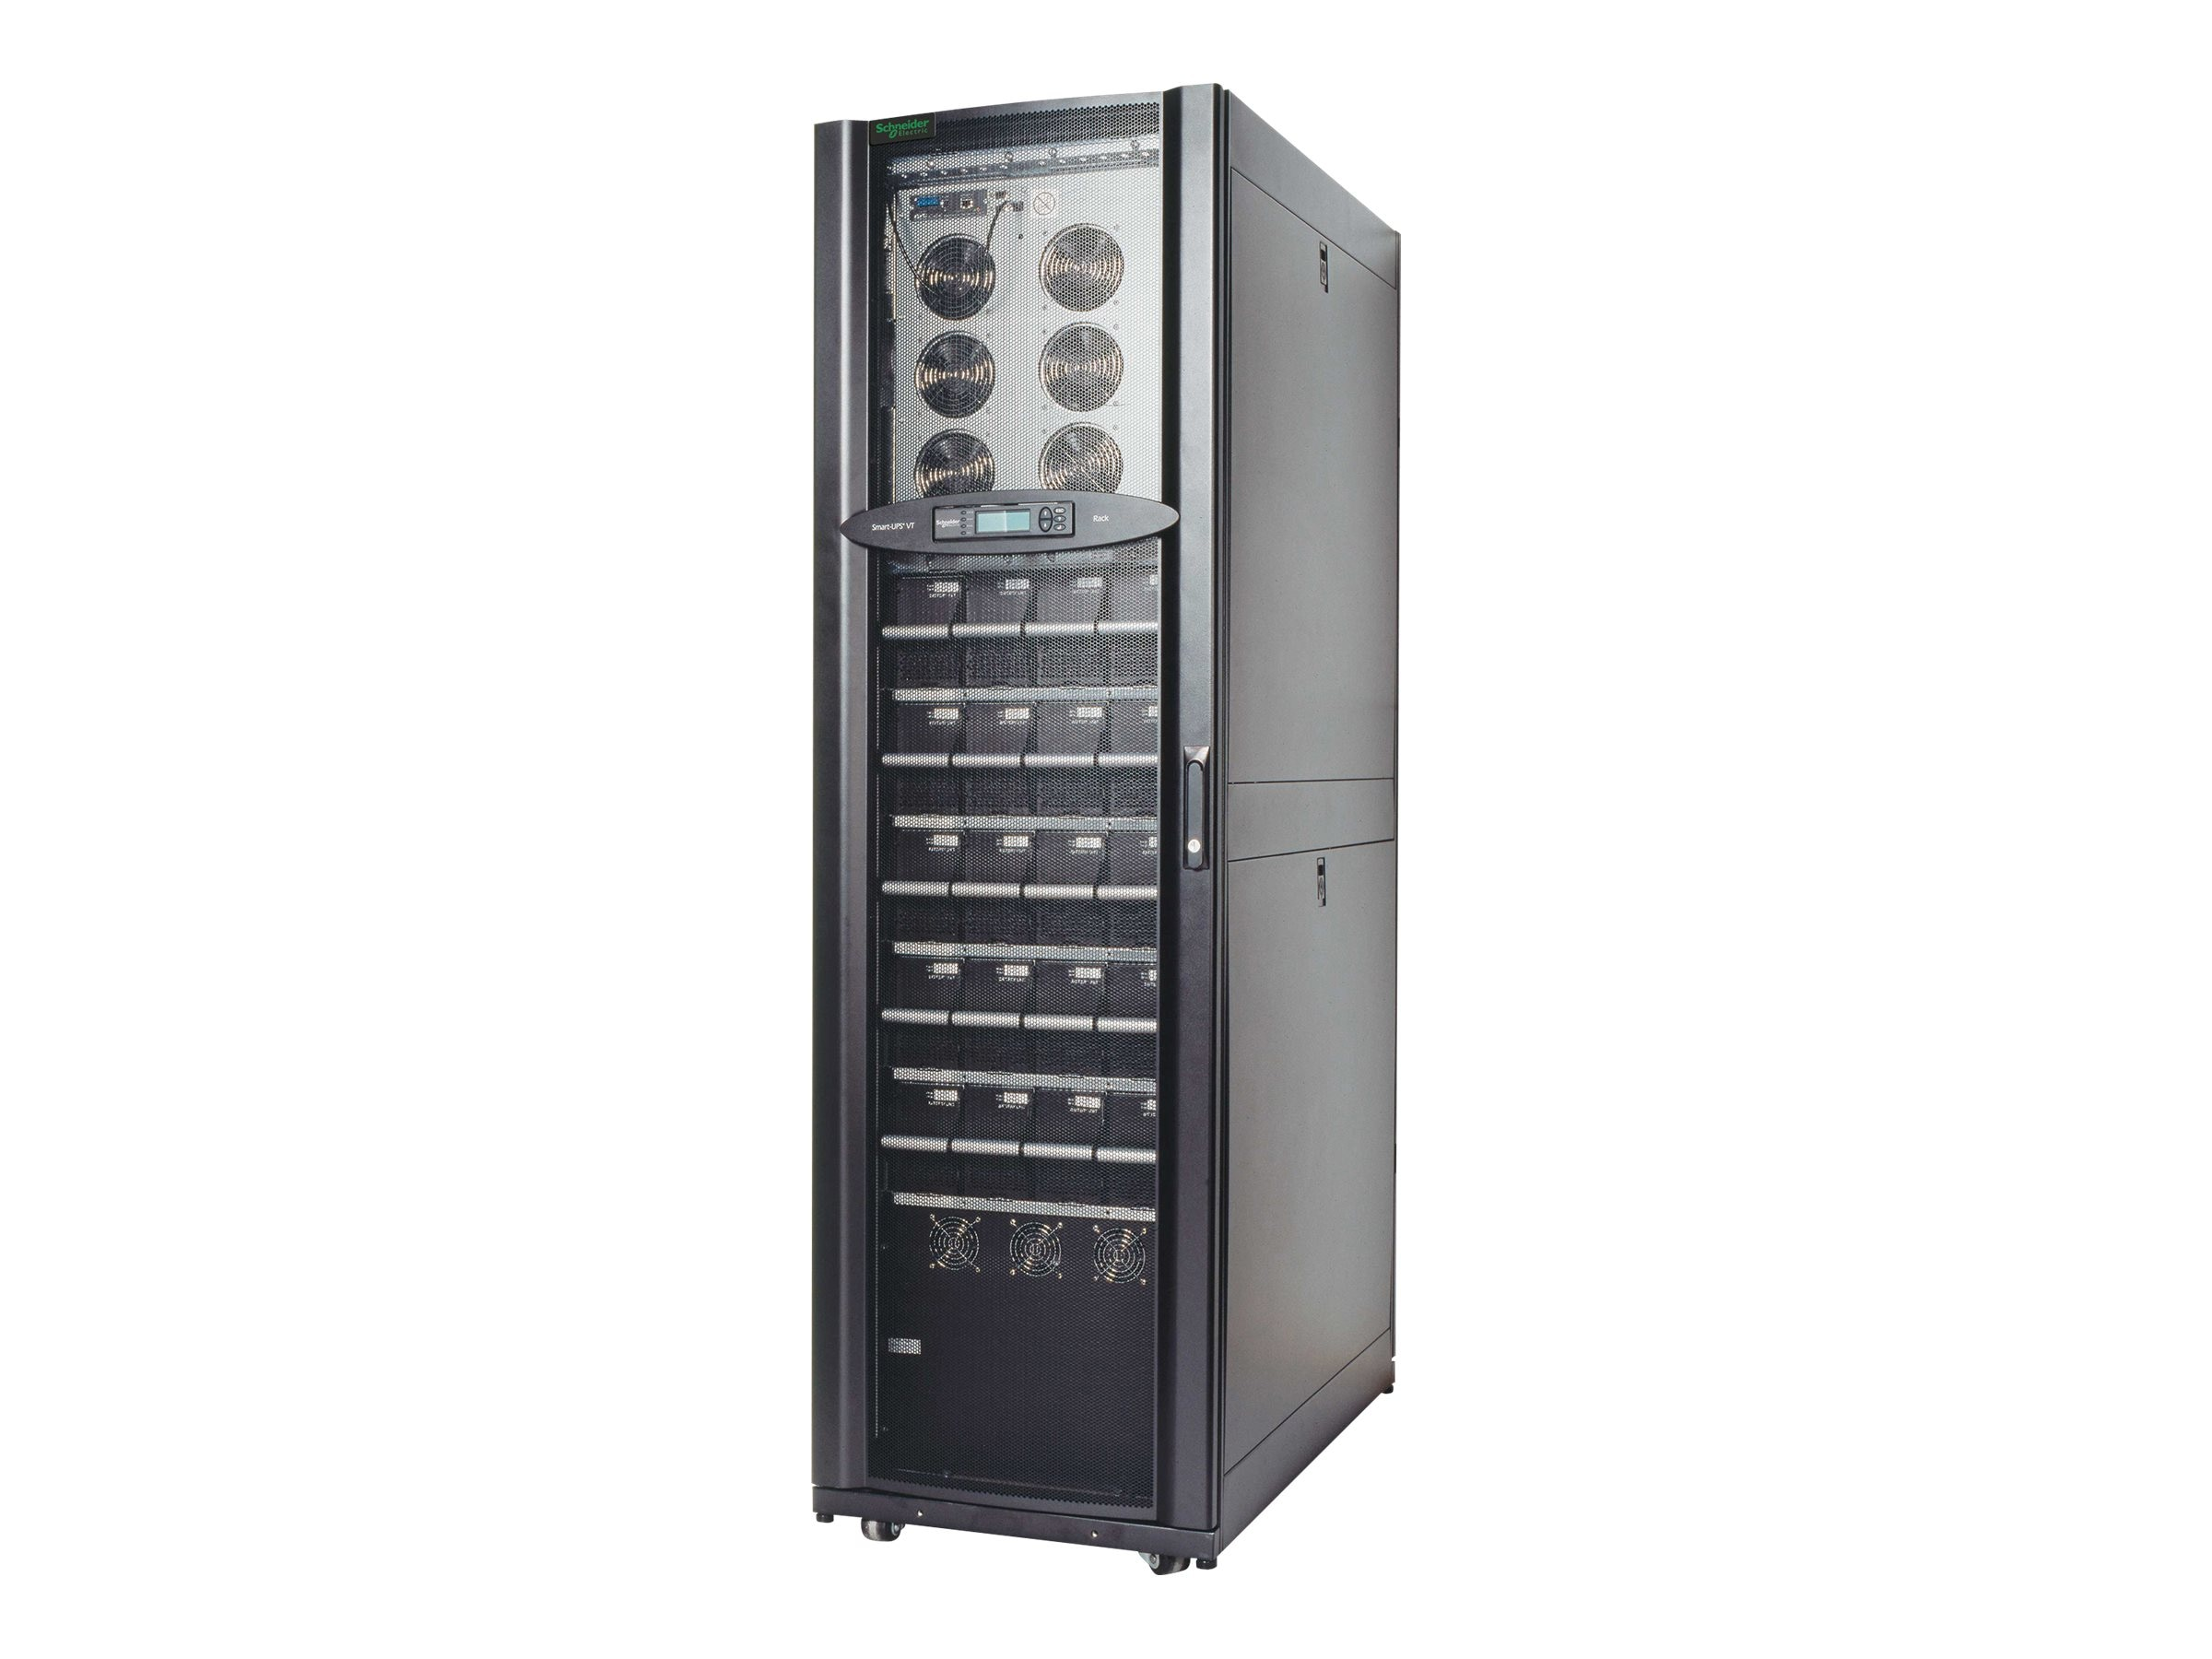 APC Smart-UPS VT 20kVA RM, 480V Input, 208V Output, (2) Battery Modules Expandable to (5), PDU, Startup, SUVTR20KG2B5S, 7962376, Battery Backup/UPS